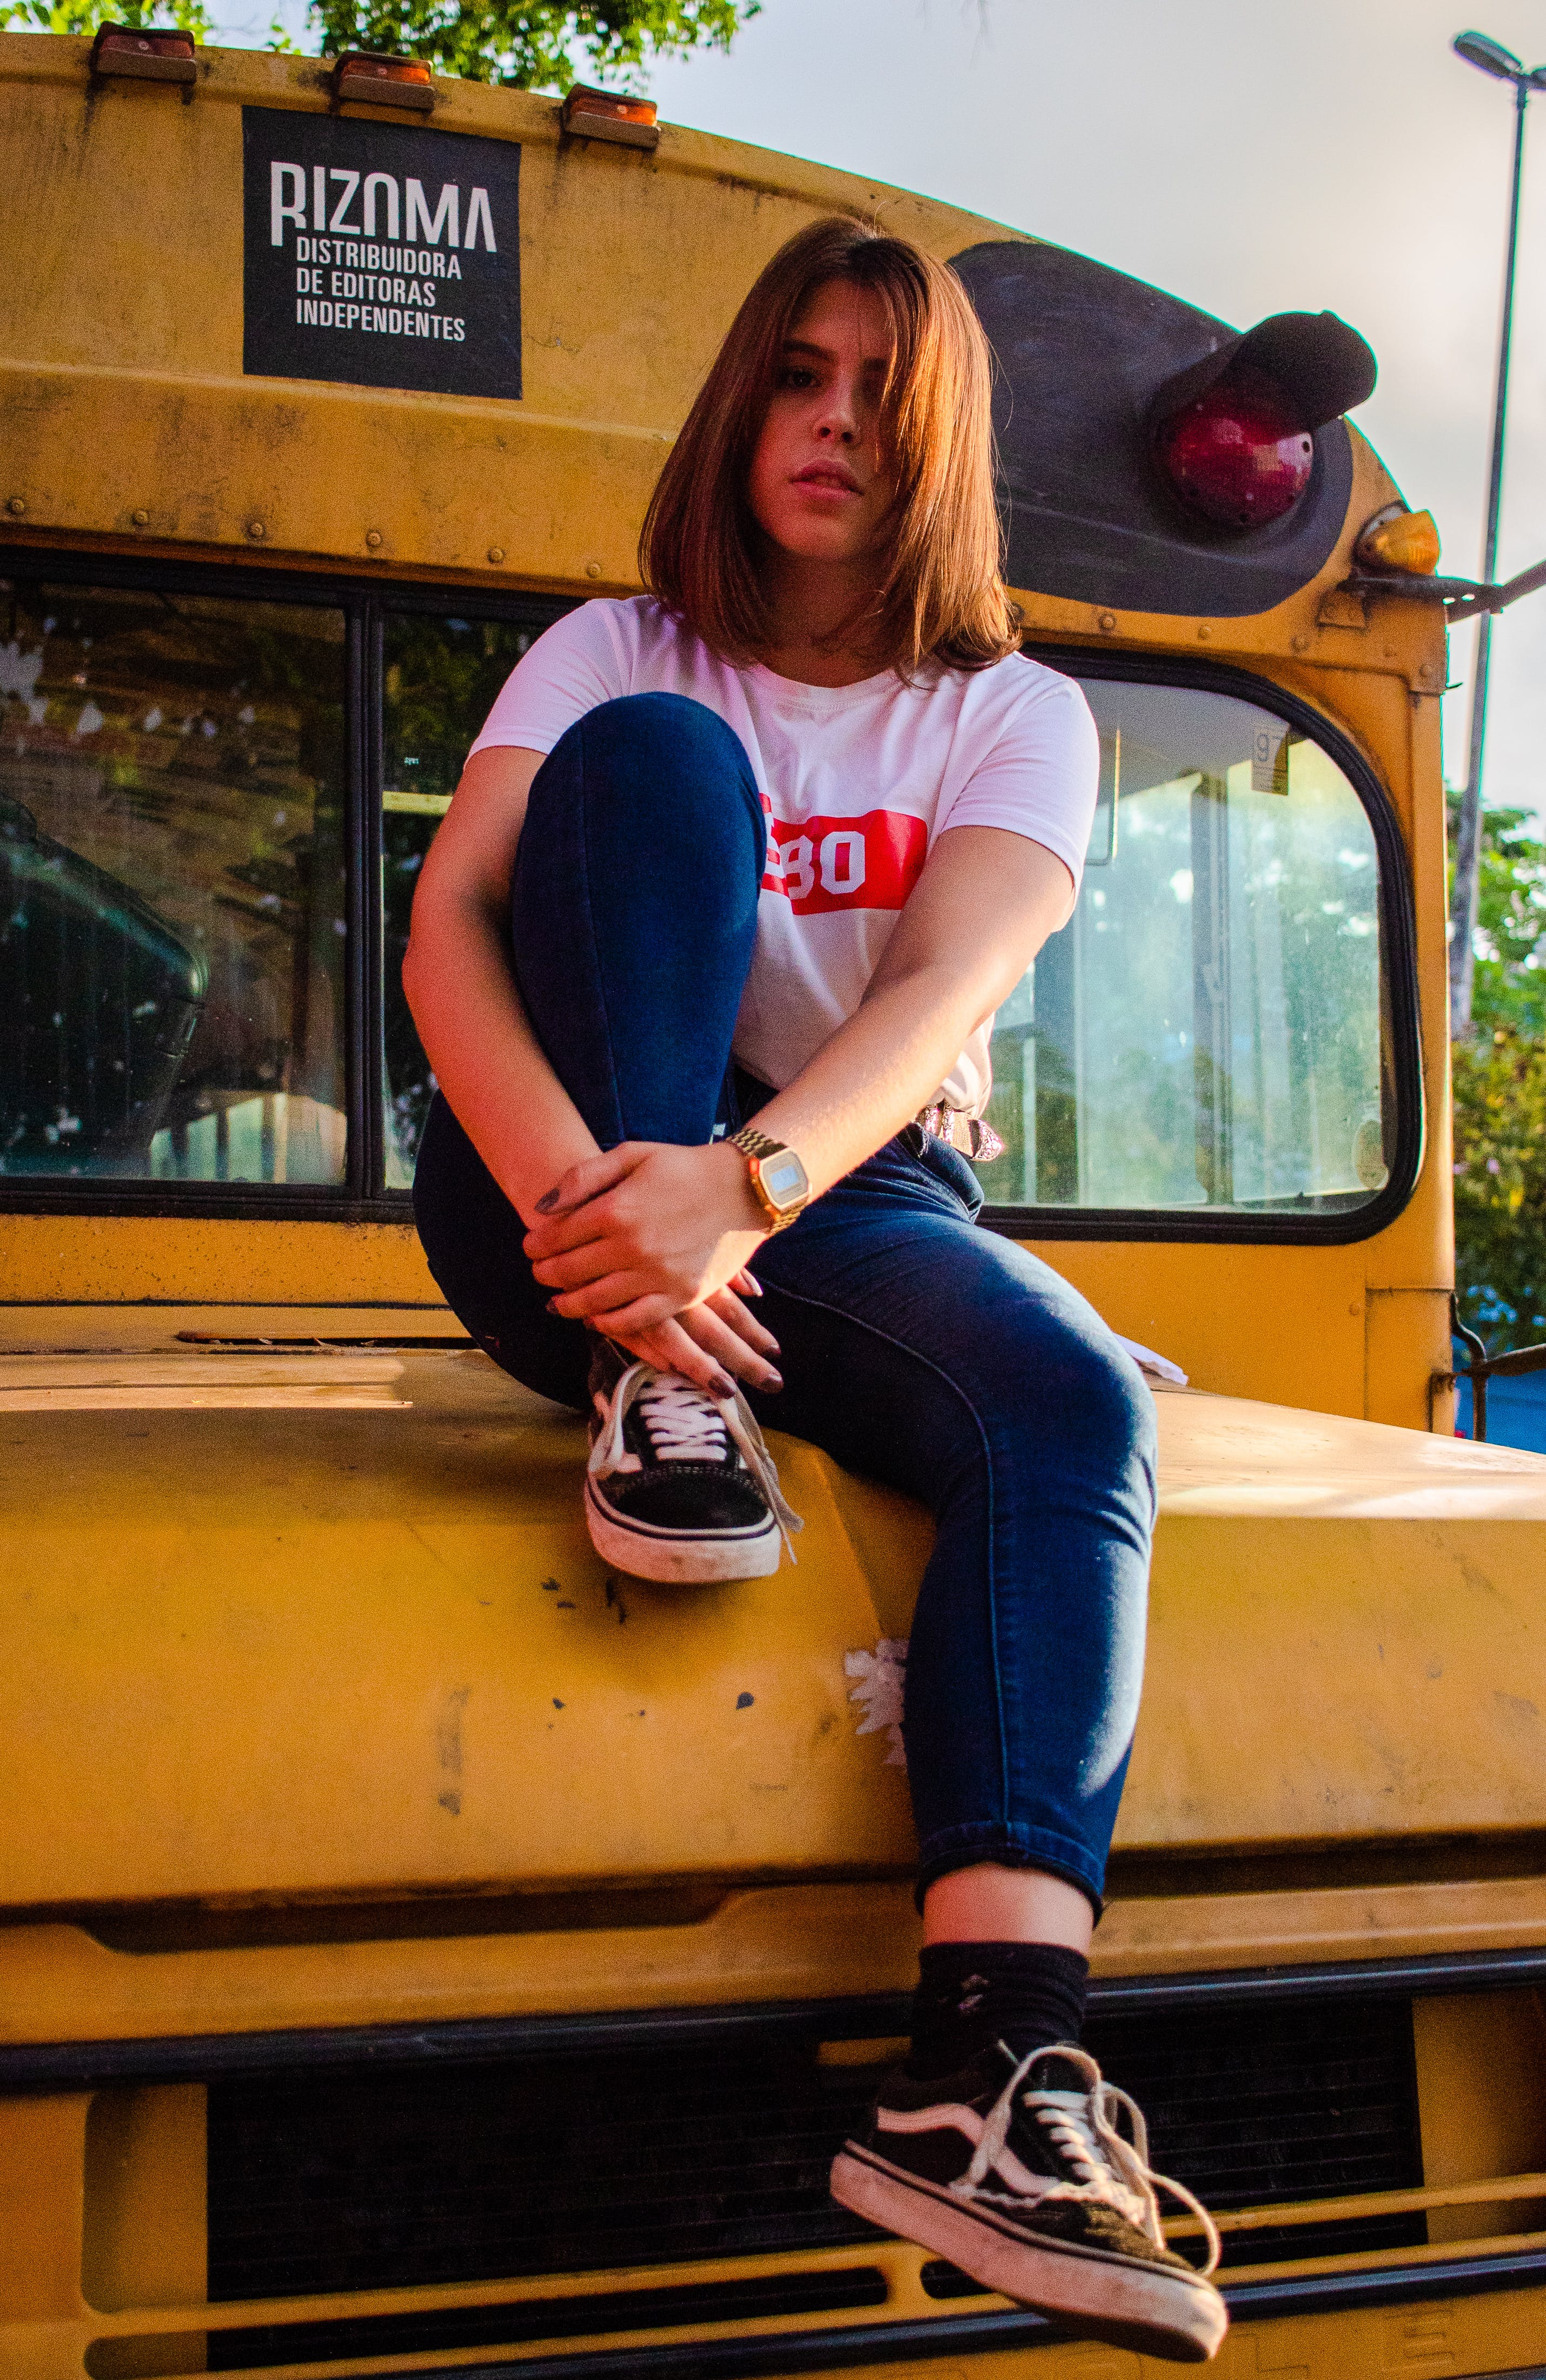 Woman Wearing White T-shirt Sitting on Bus